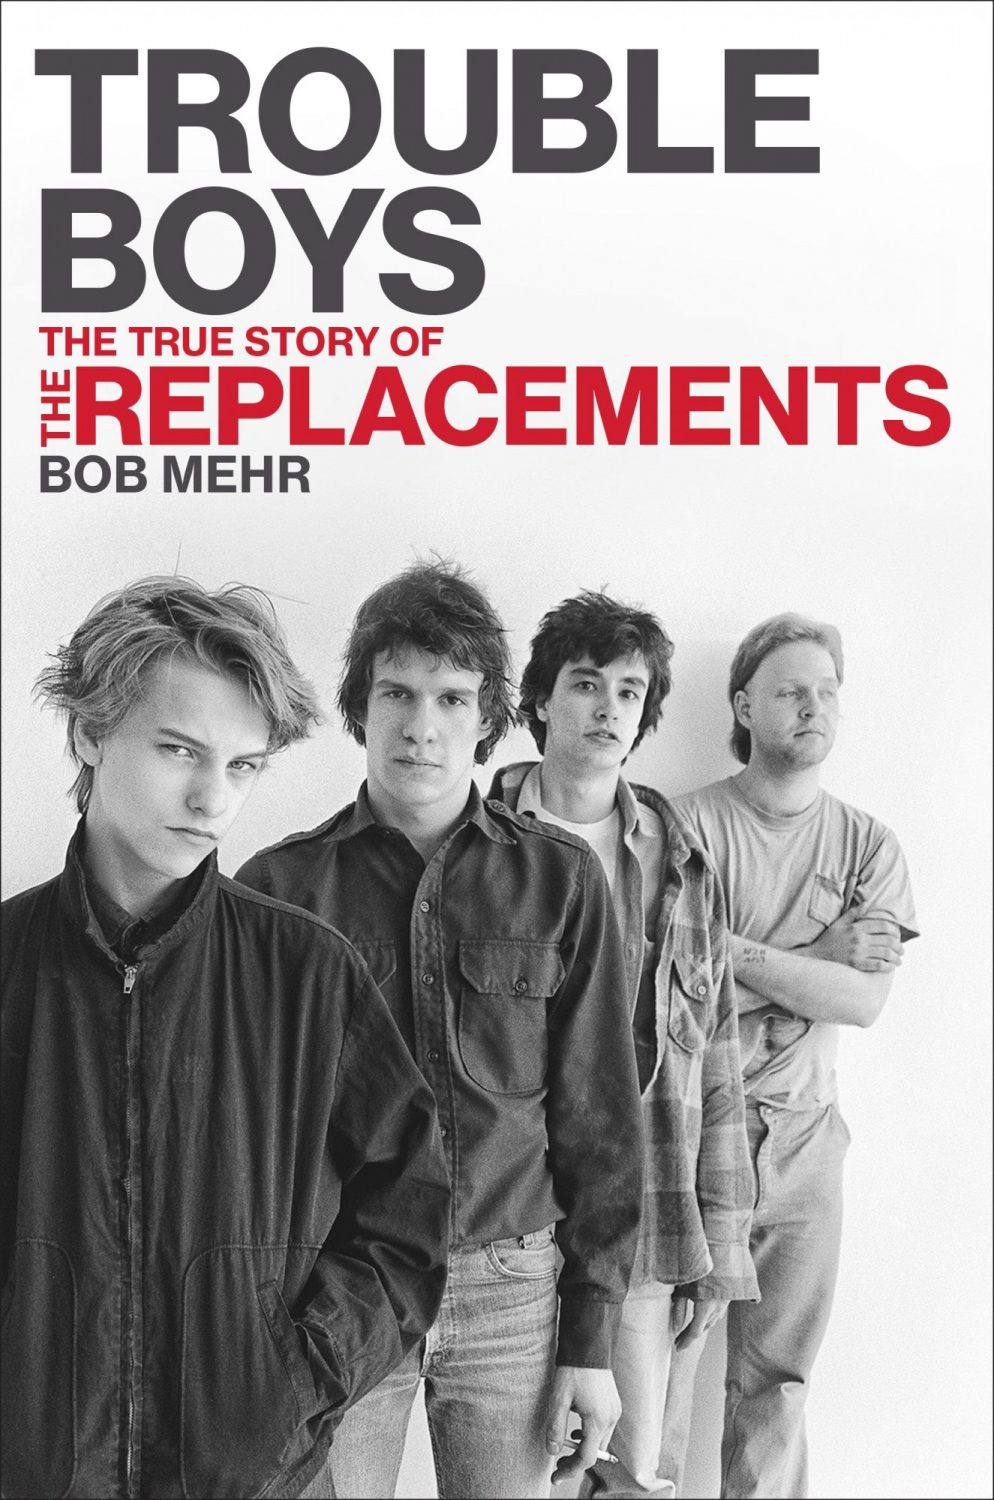 """""""Trouble Boys"""" author Bob Mehr to appear at The Strand Bookstore on Jun. 8, talks Replacements and more"""